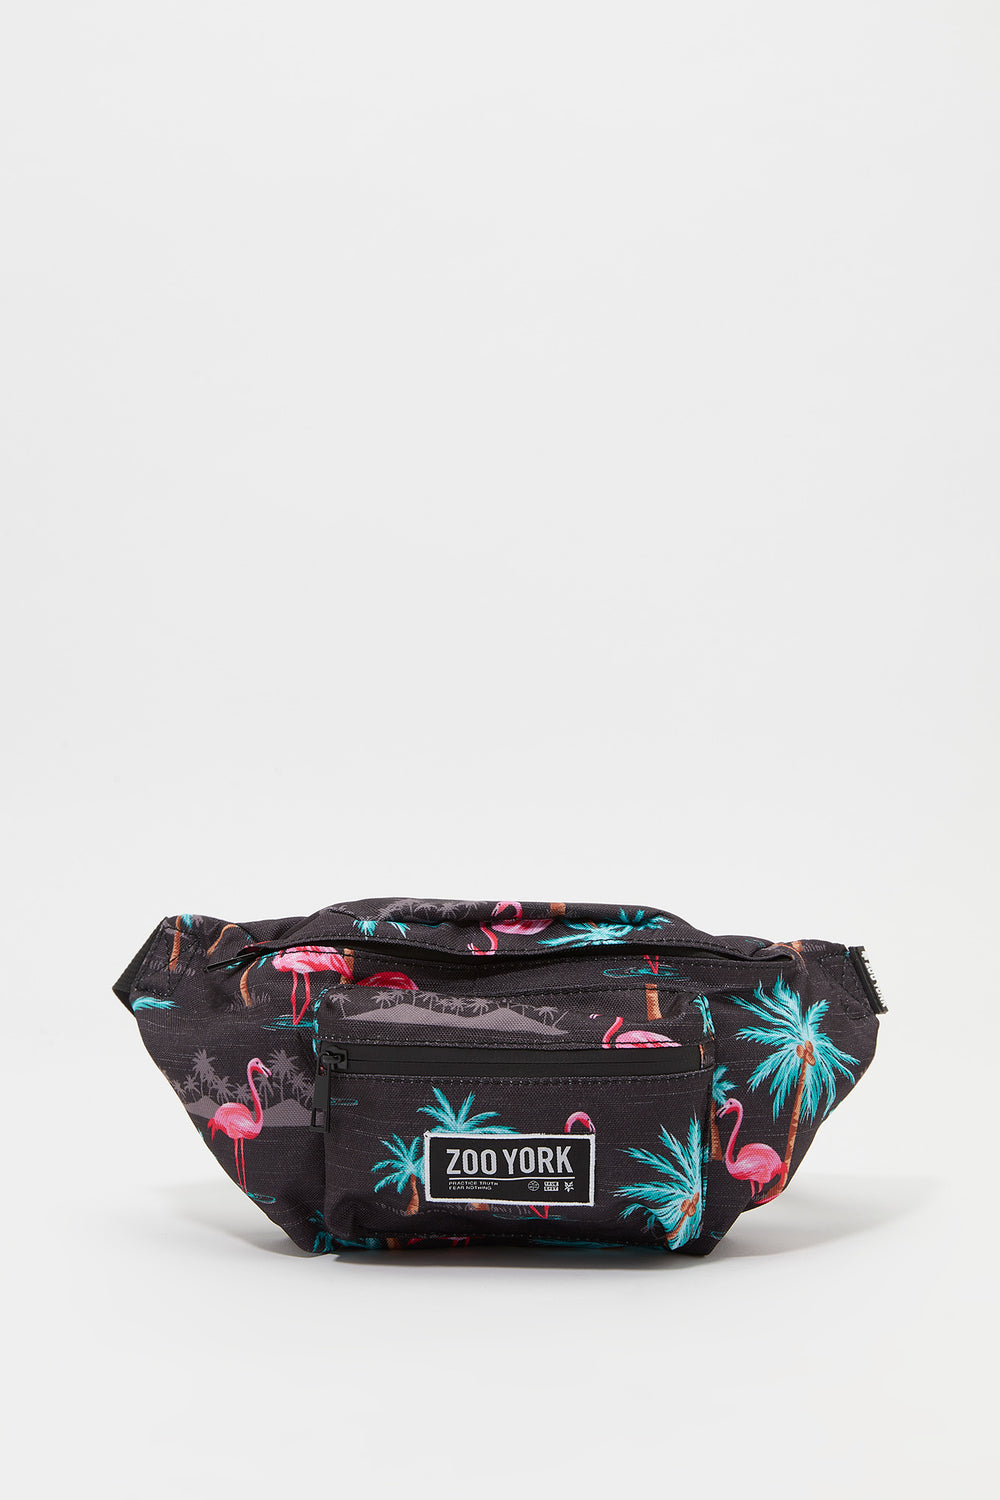 Sac Banane Imprimé Flamants Roses Zoo York Gris Noir